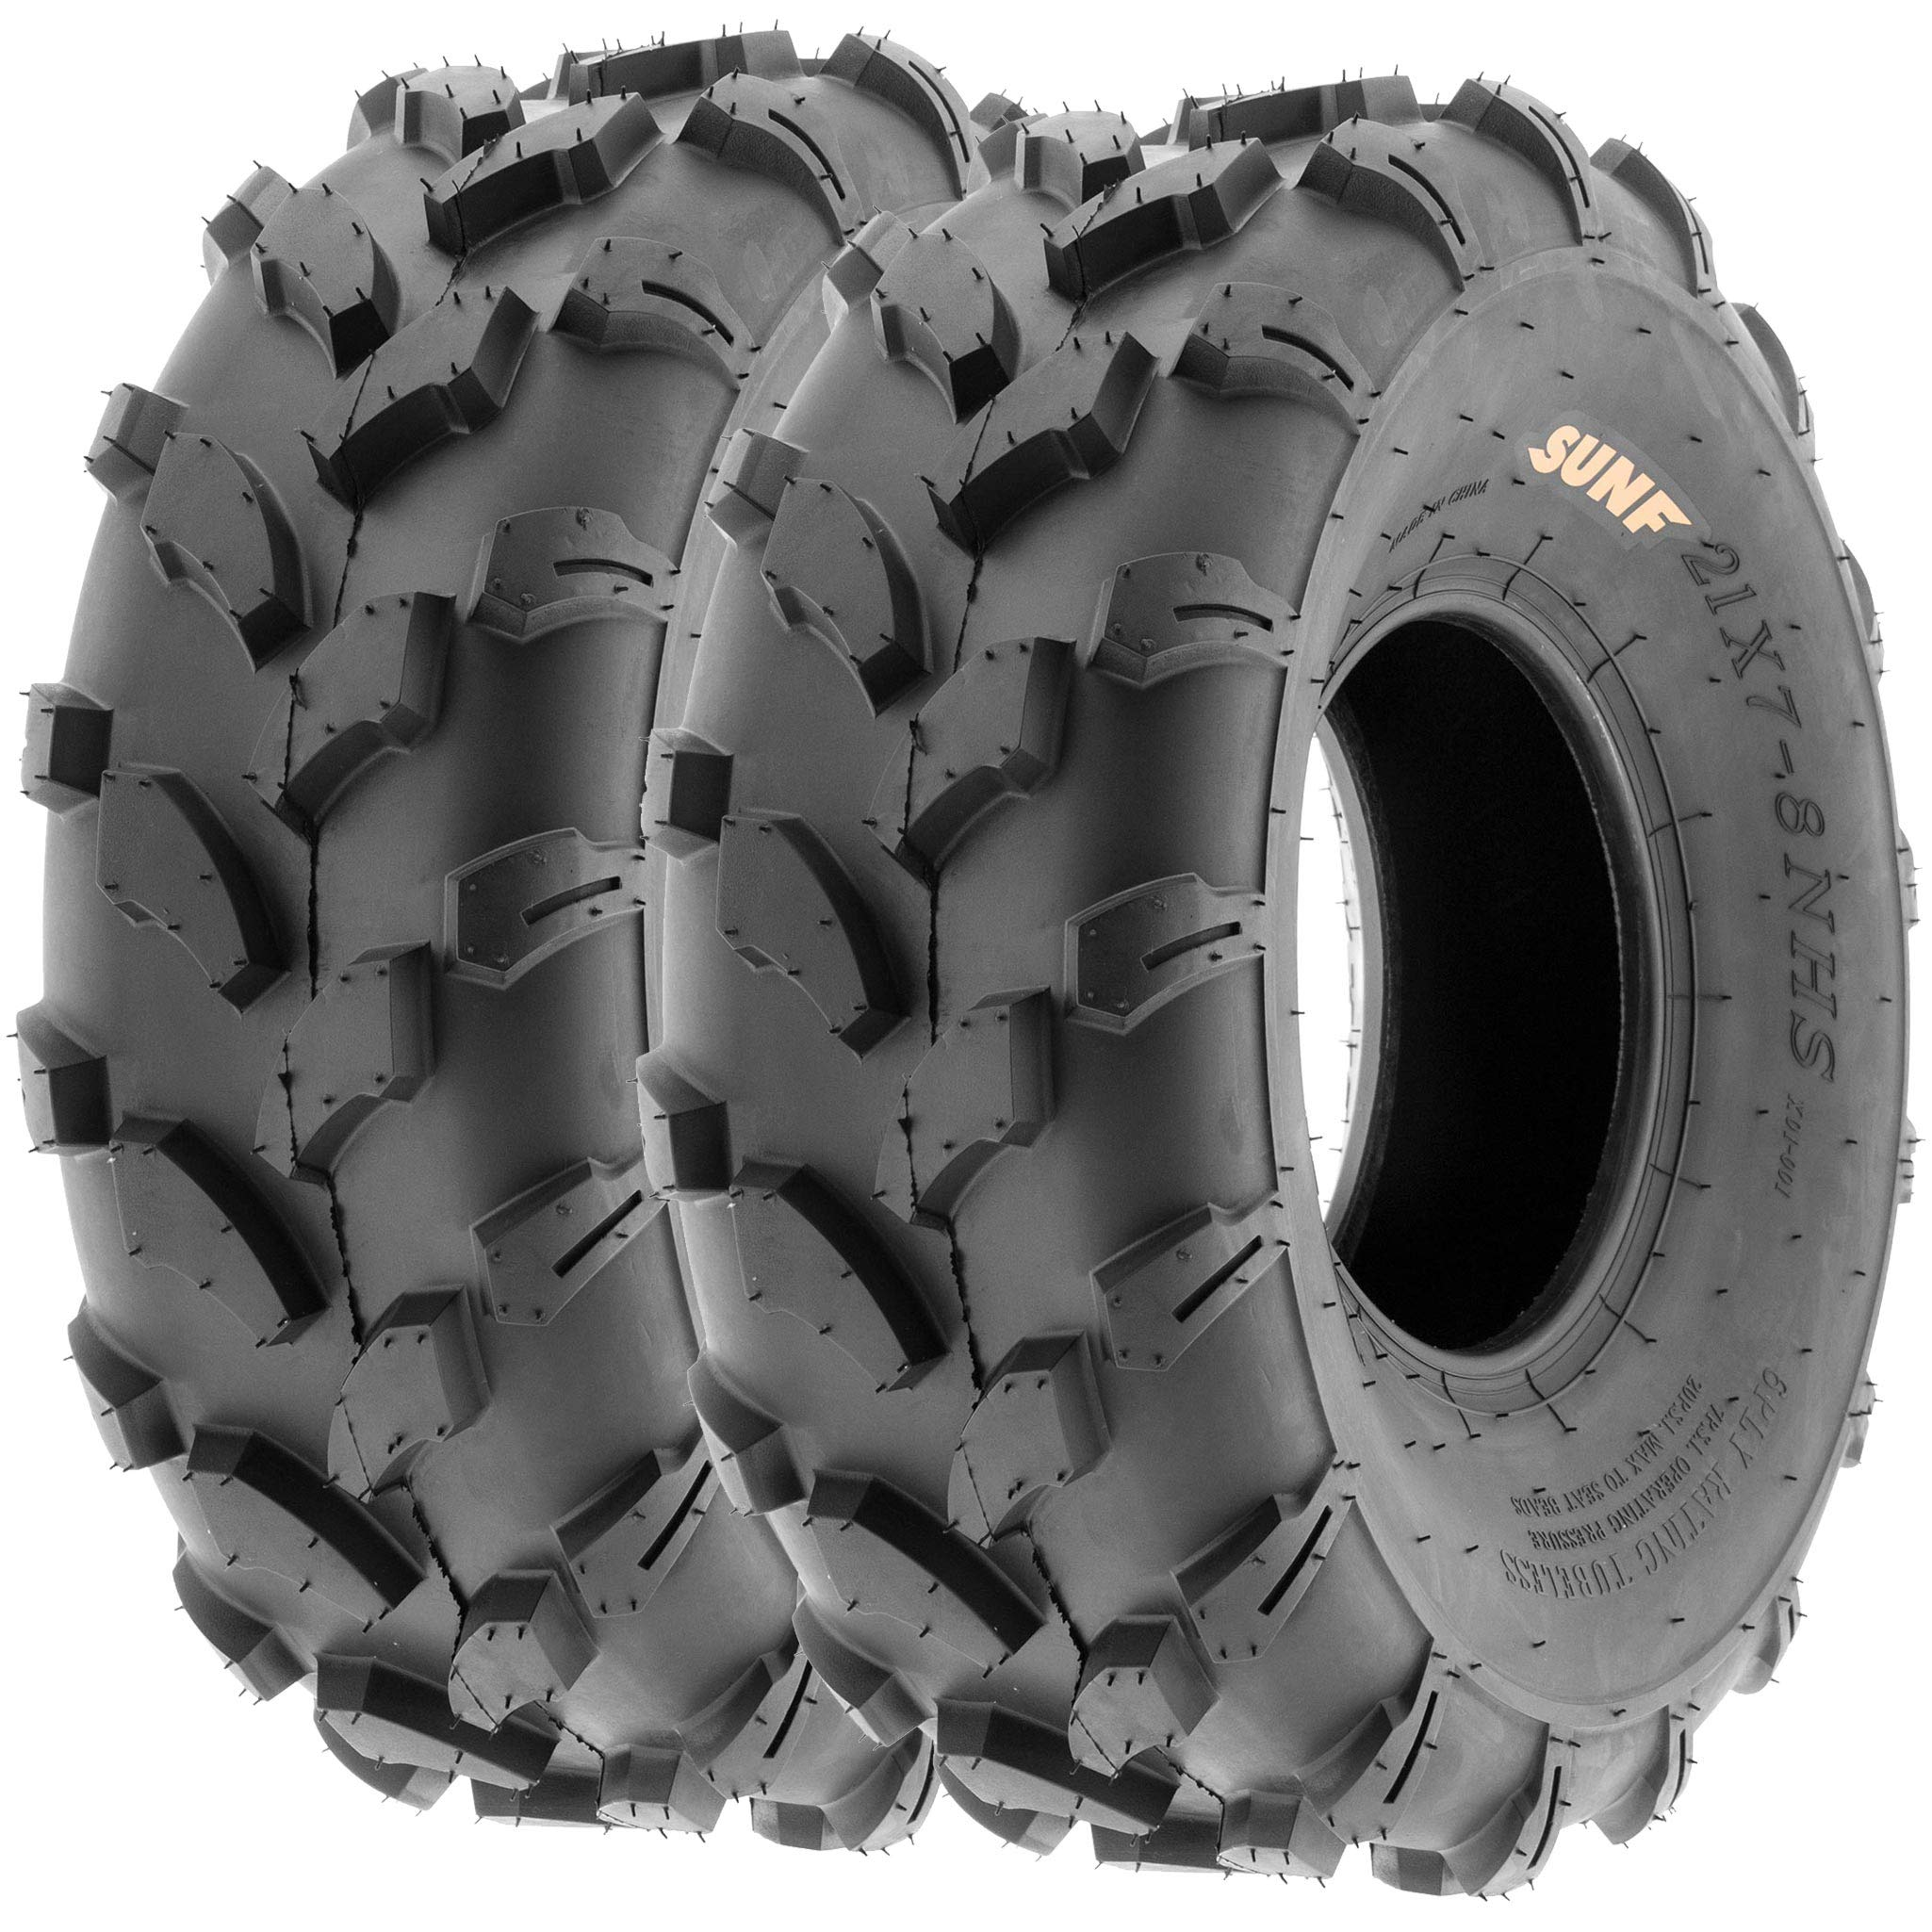 SunF A003 ATV/UTV/Lawn-Mowers Off-Road Tire 18x7-8, 6 PR, Directional Tread (Pair of 2) by SUNF